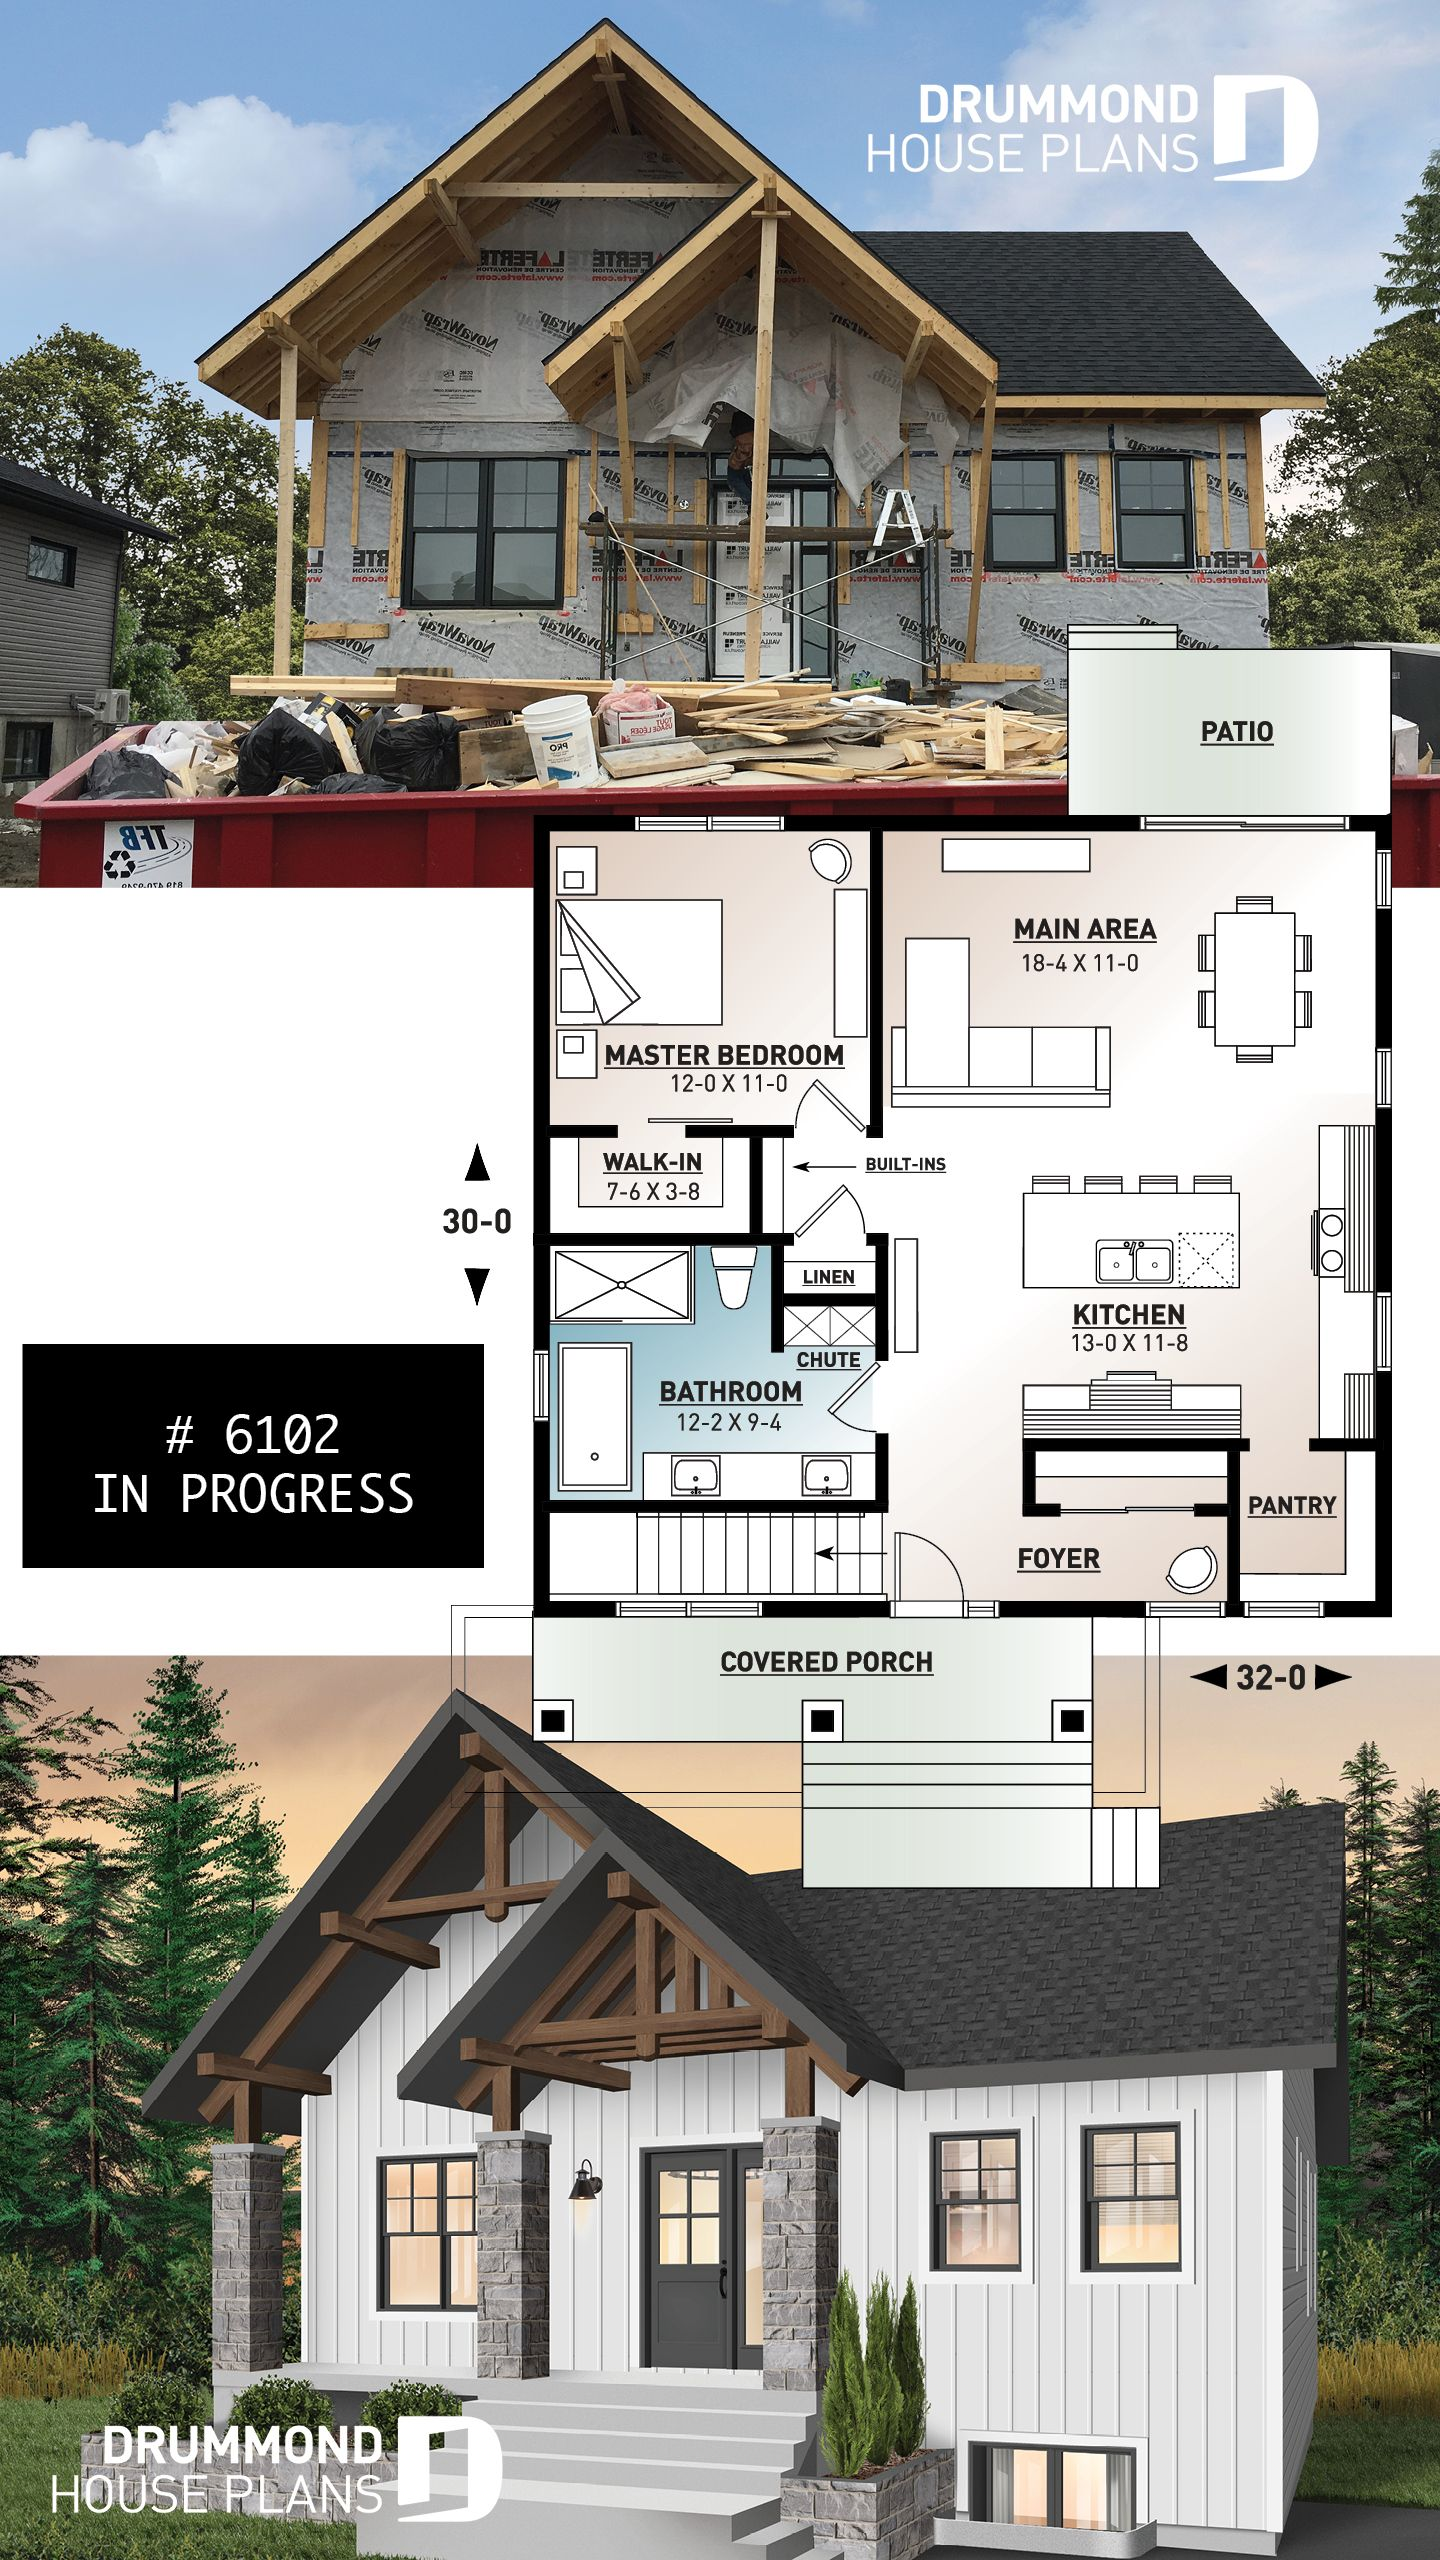 Discover The Plan 6102 Nordika Which Will Please You For Its 1 2 3 Bedrooms And For Its Modern Rustic Styles House Plans Farmhouse Ranch House Plans Basement House Plans